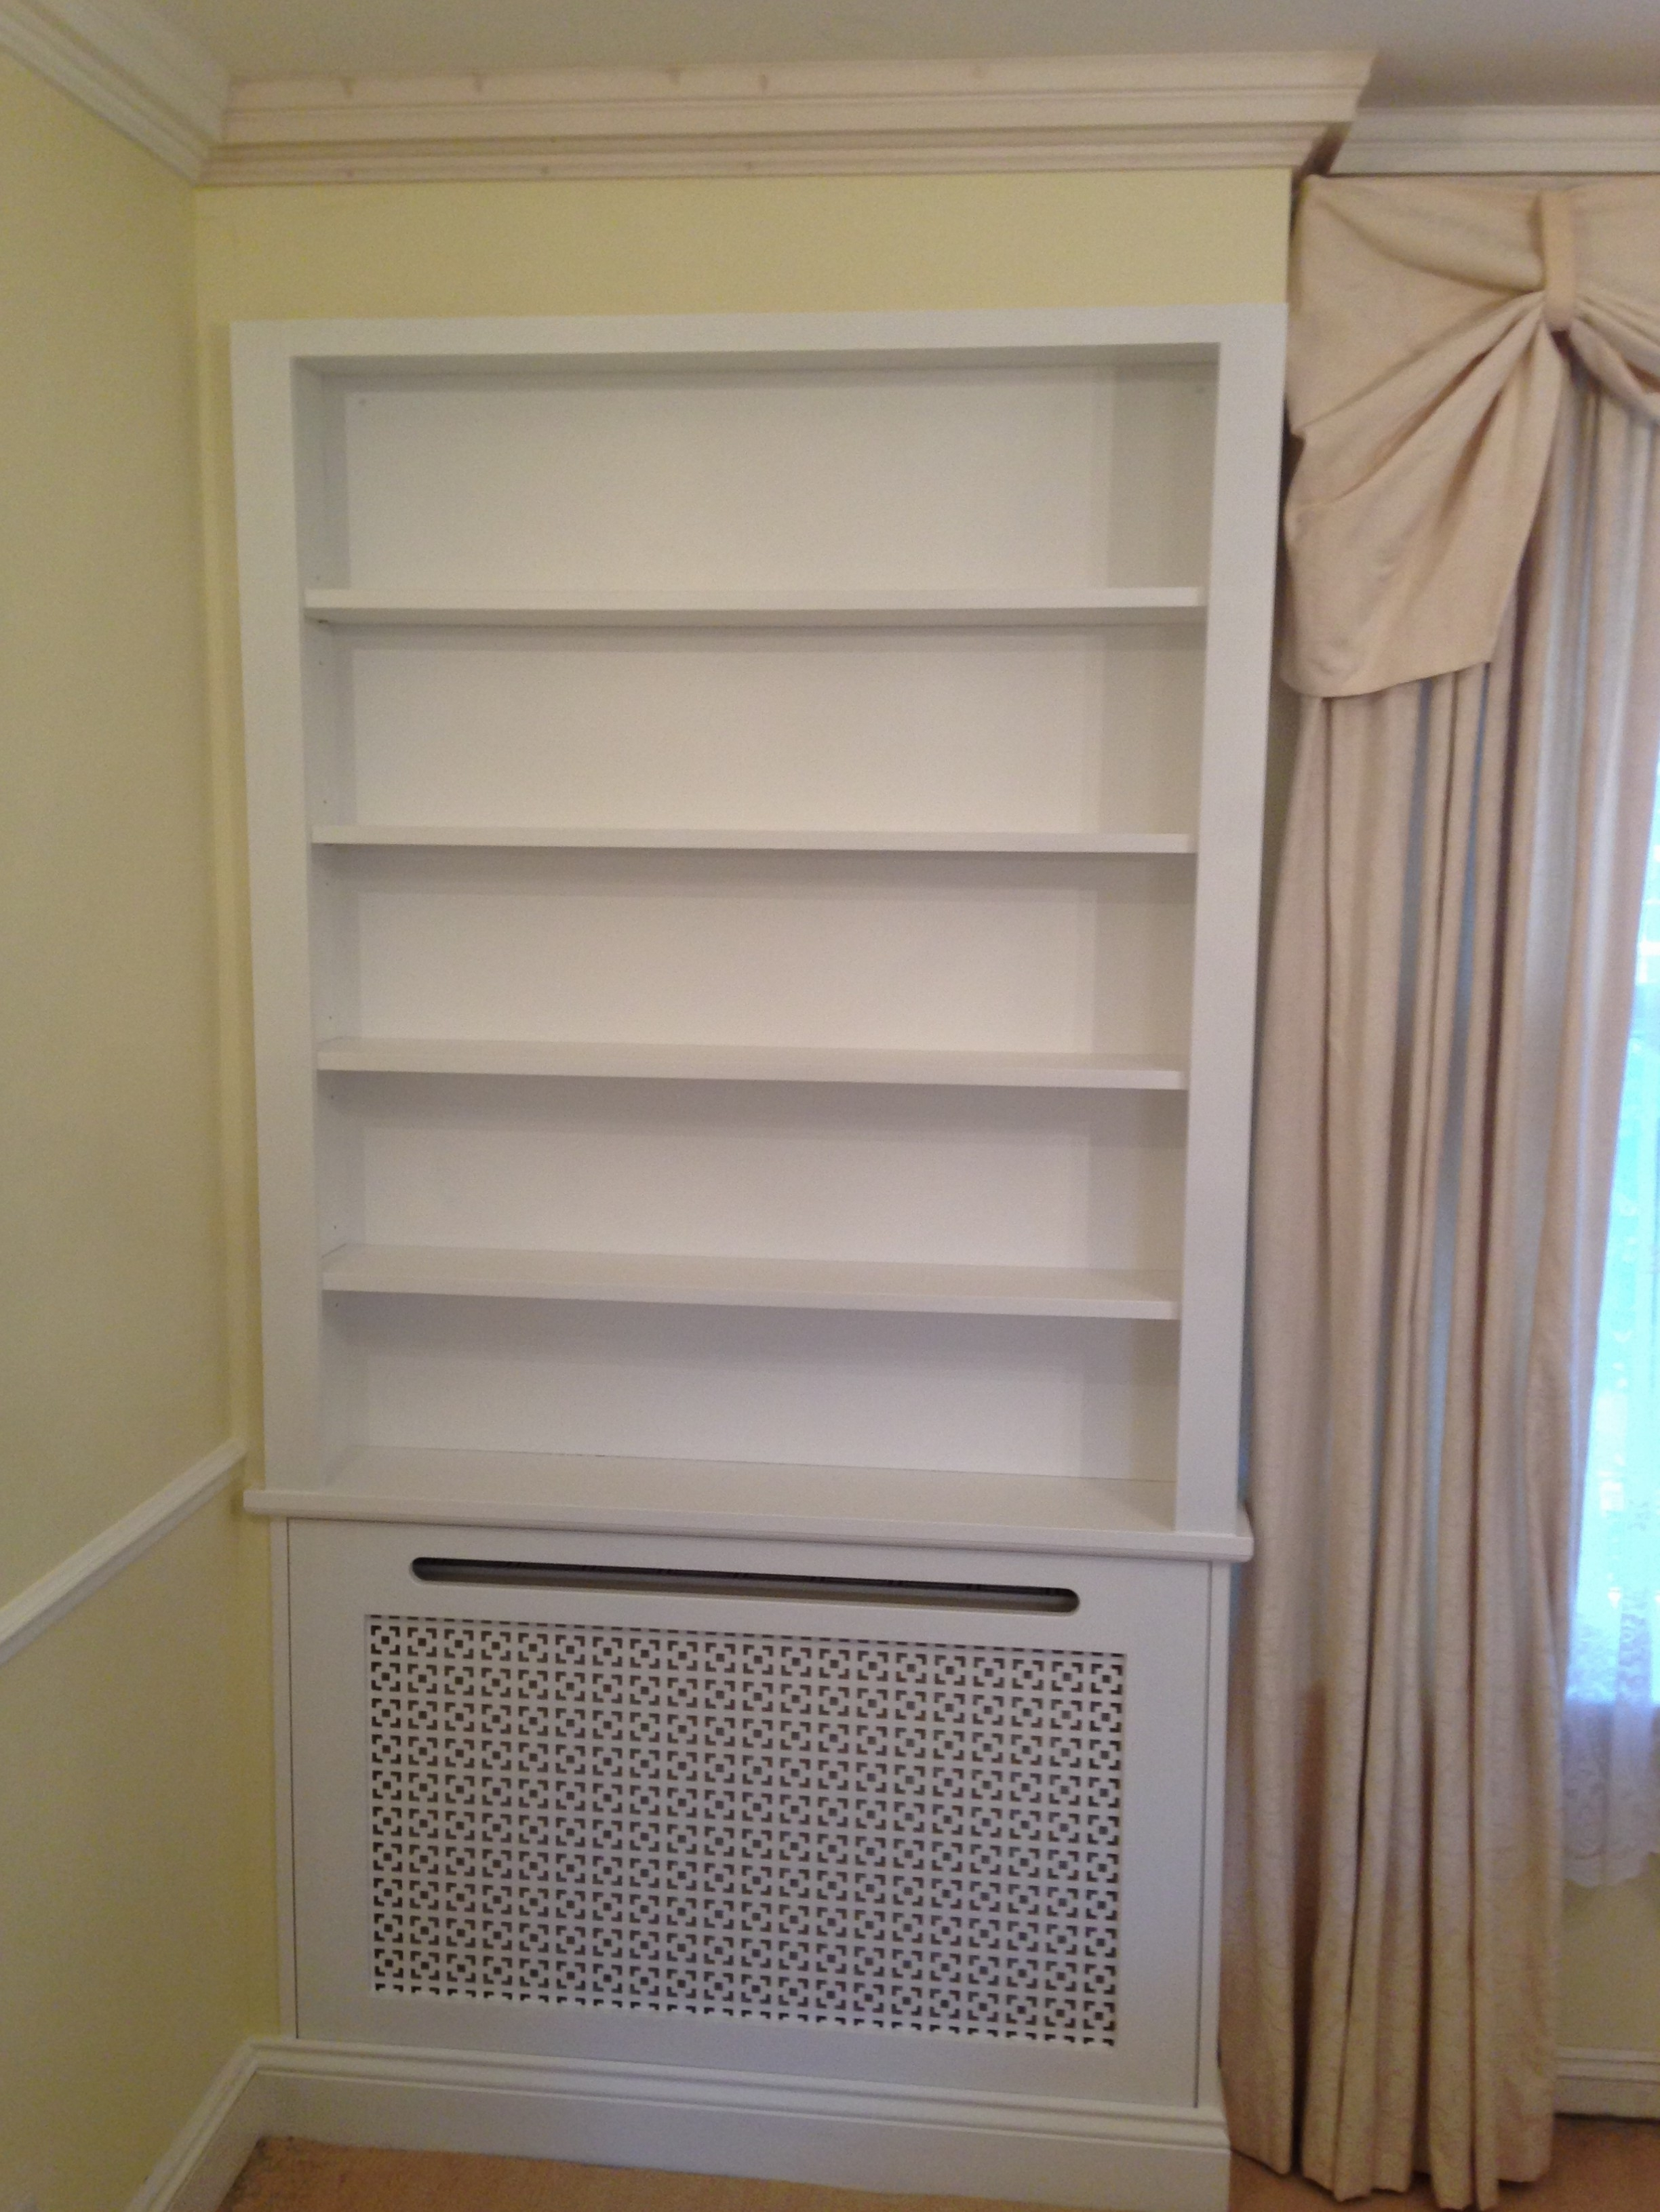 Widely Used Bookcases Radiator Cover With Regard To Radiator Cover Bookcase – Harrow Builders And Bespoke Joinery – Lj (View 15 of 15)